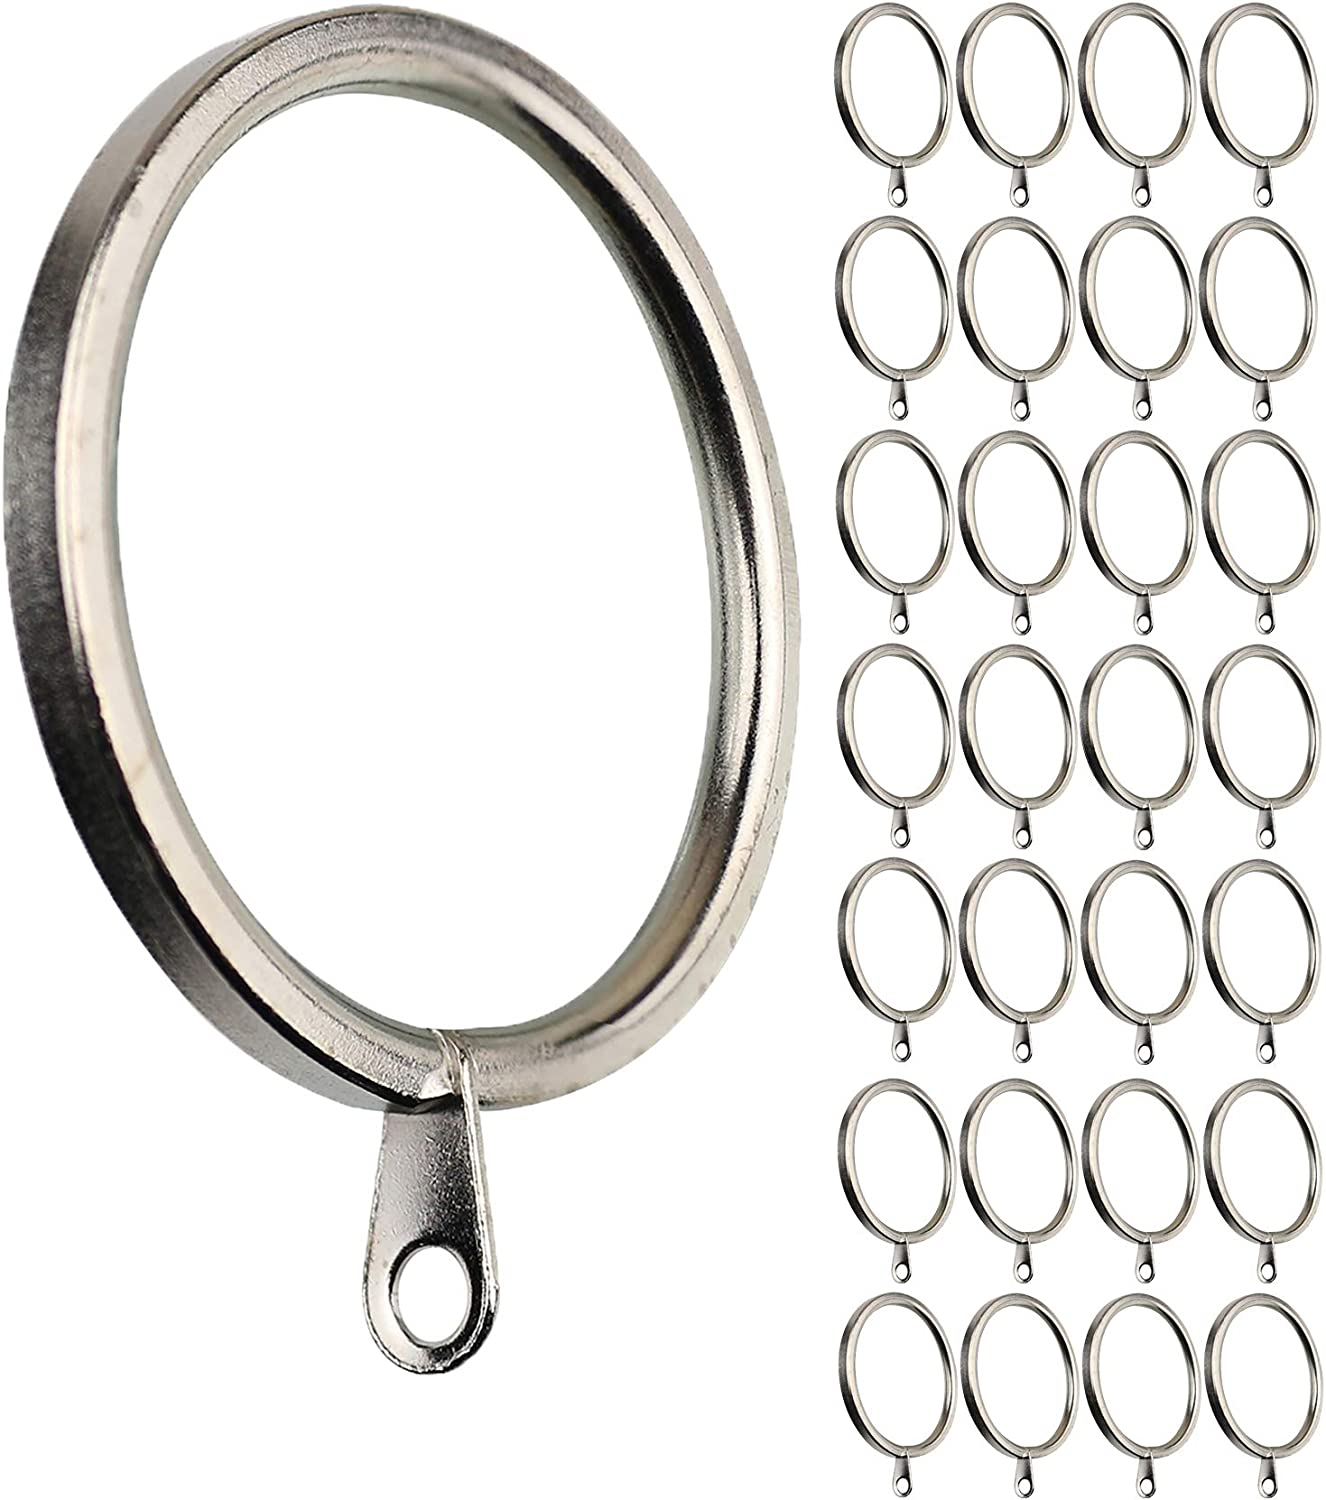 Blossm 28pack Curtain Rings with Clips Decorative Drapery Rustproof Vintage 1 Inch Interior Diameter( Black)